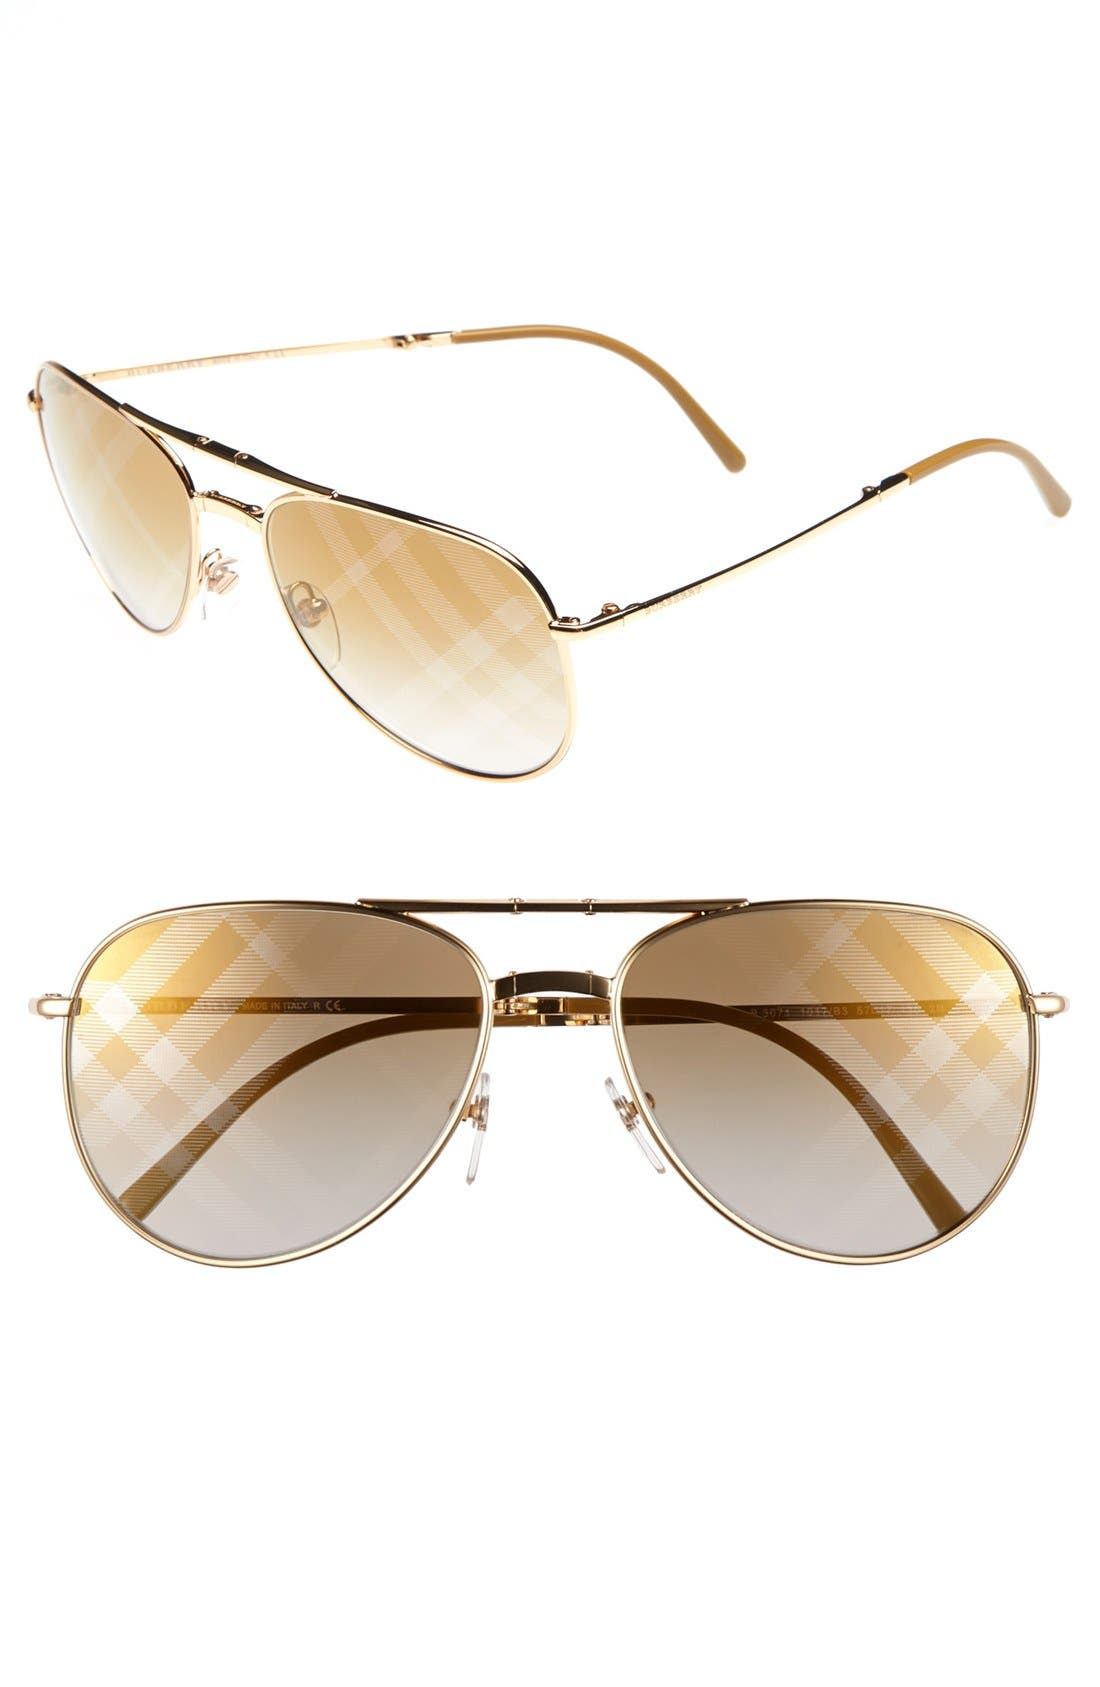 Main Image - Burberry 57mm Aviator Sunglasses